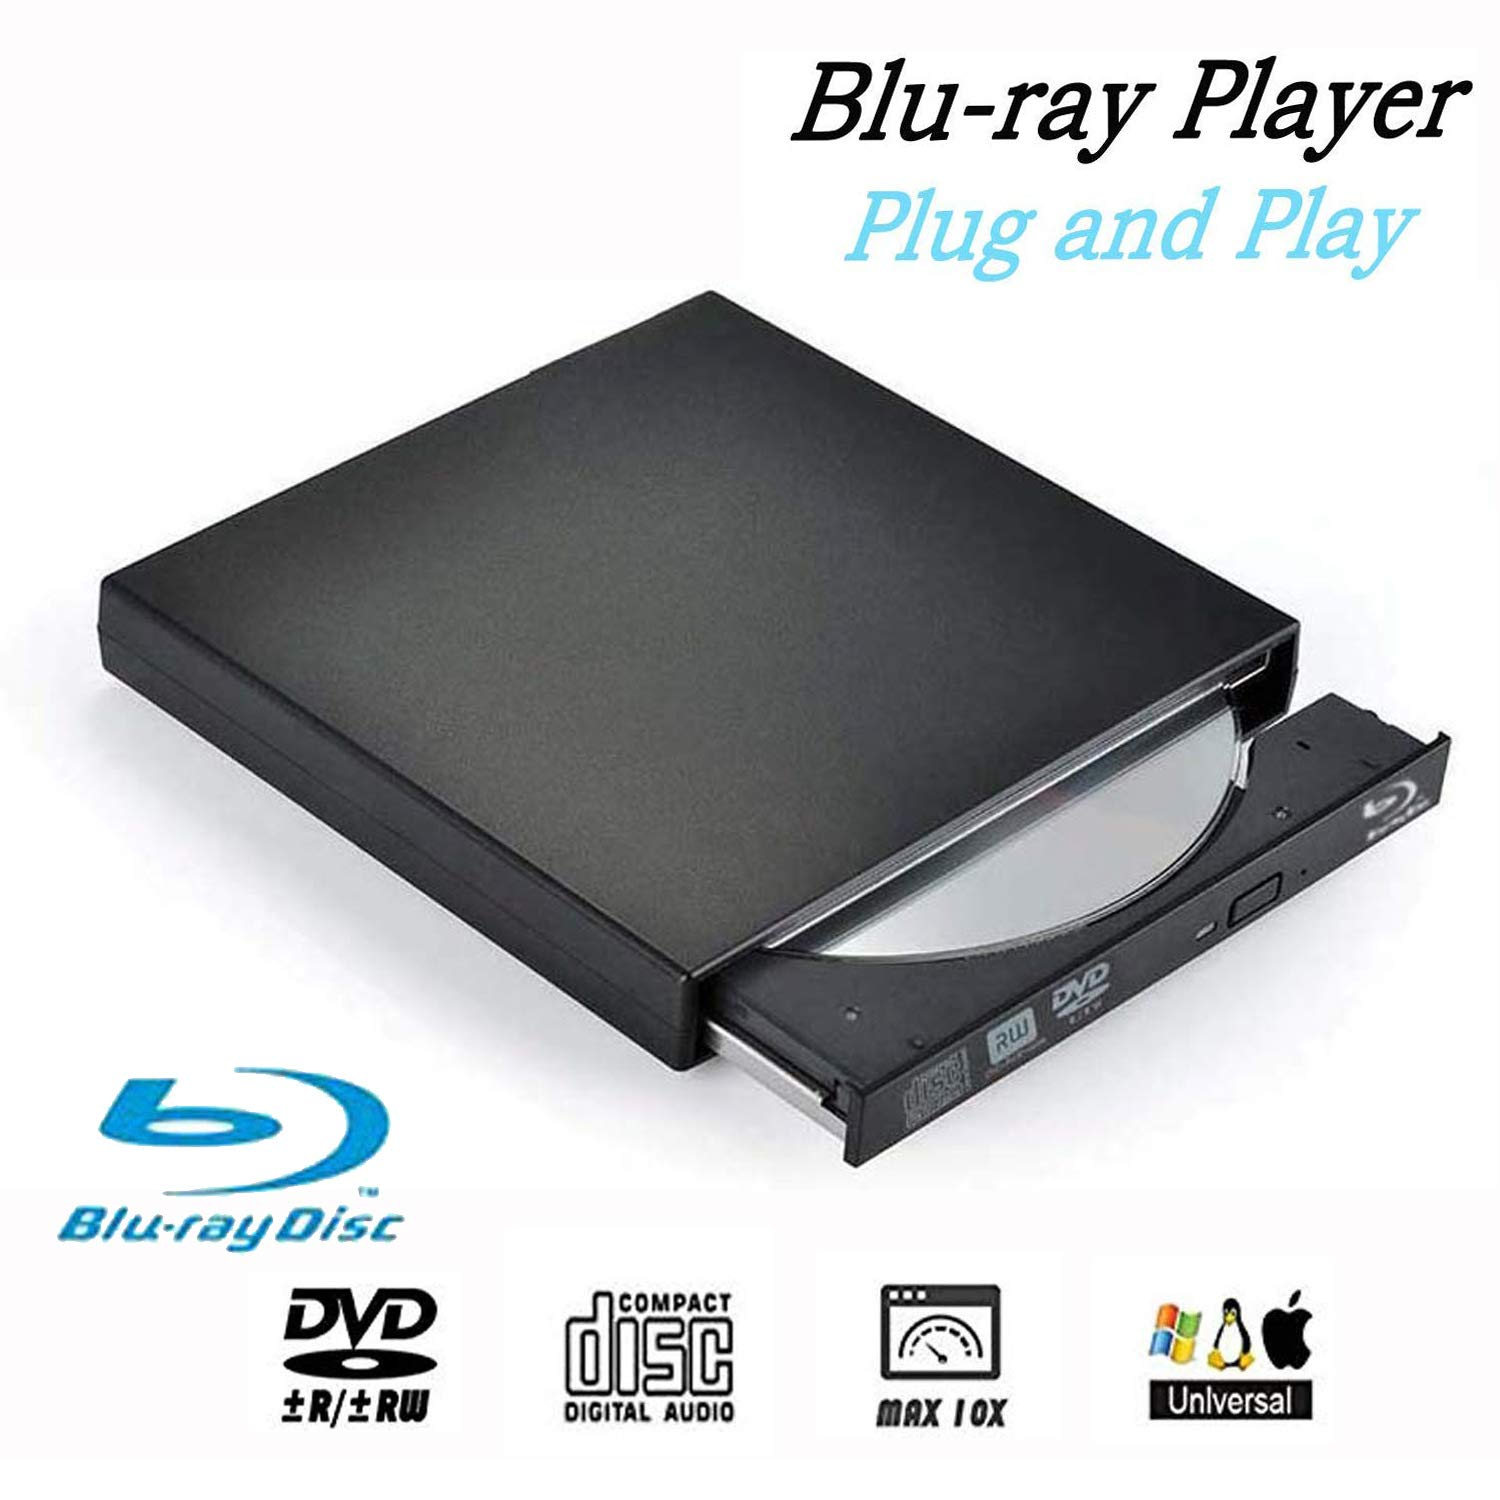 Blu-Ray Drive DVD Drive USB External Portable DVD Burner BD-ROM DVD/CD-RW/ROM Writer for Windows 2000/XP/Vista/Win 7/Win 8/Win 10 Notebook PC Desktop Computer,Plug and Play by Ploveyy